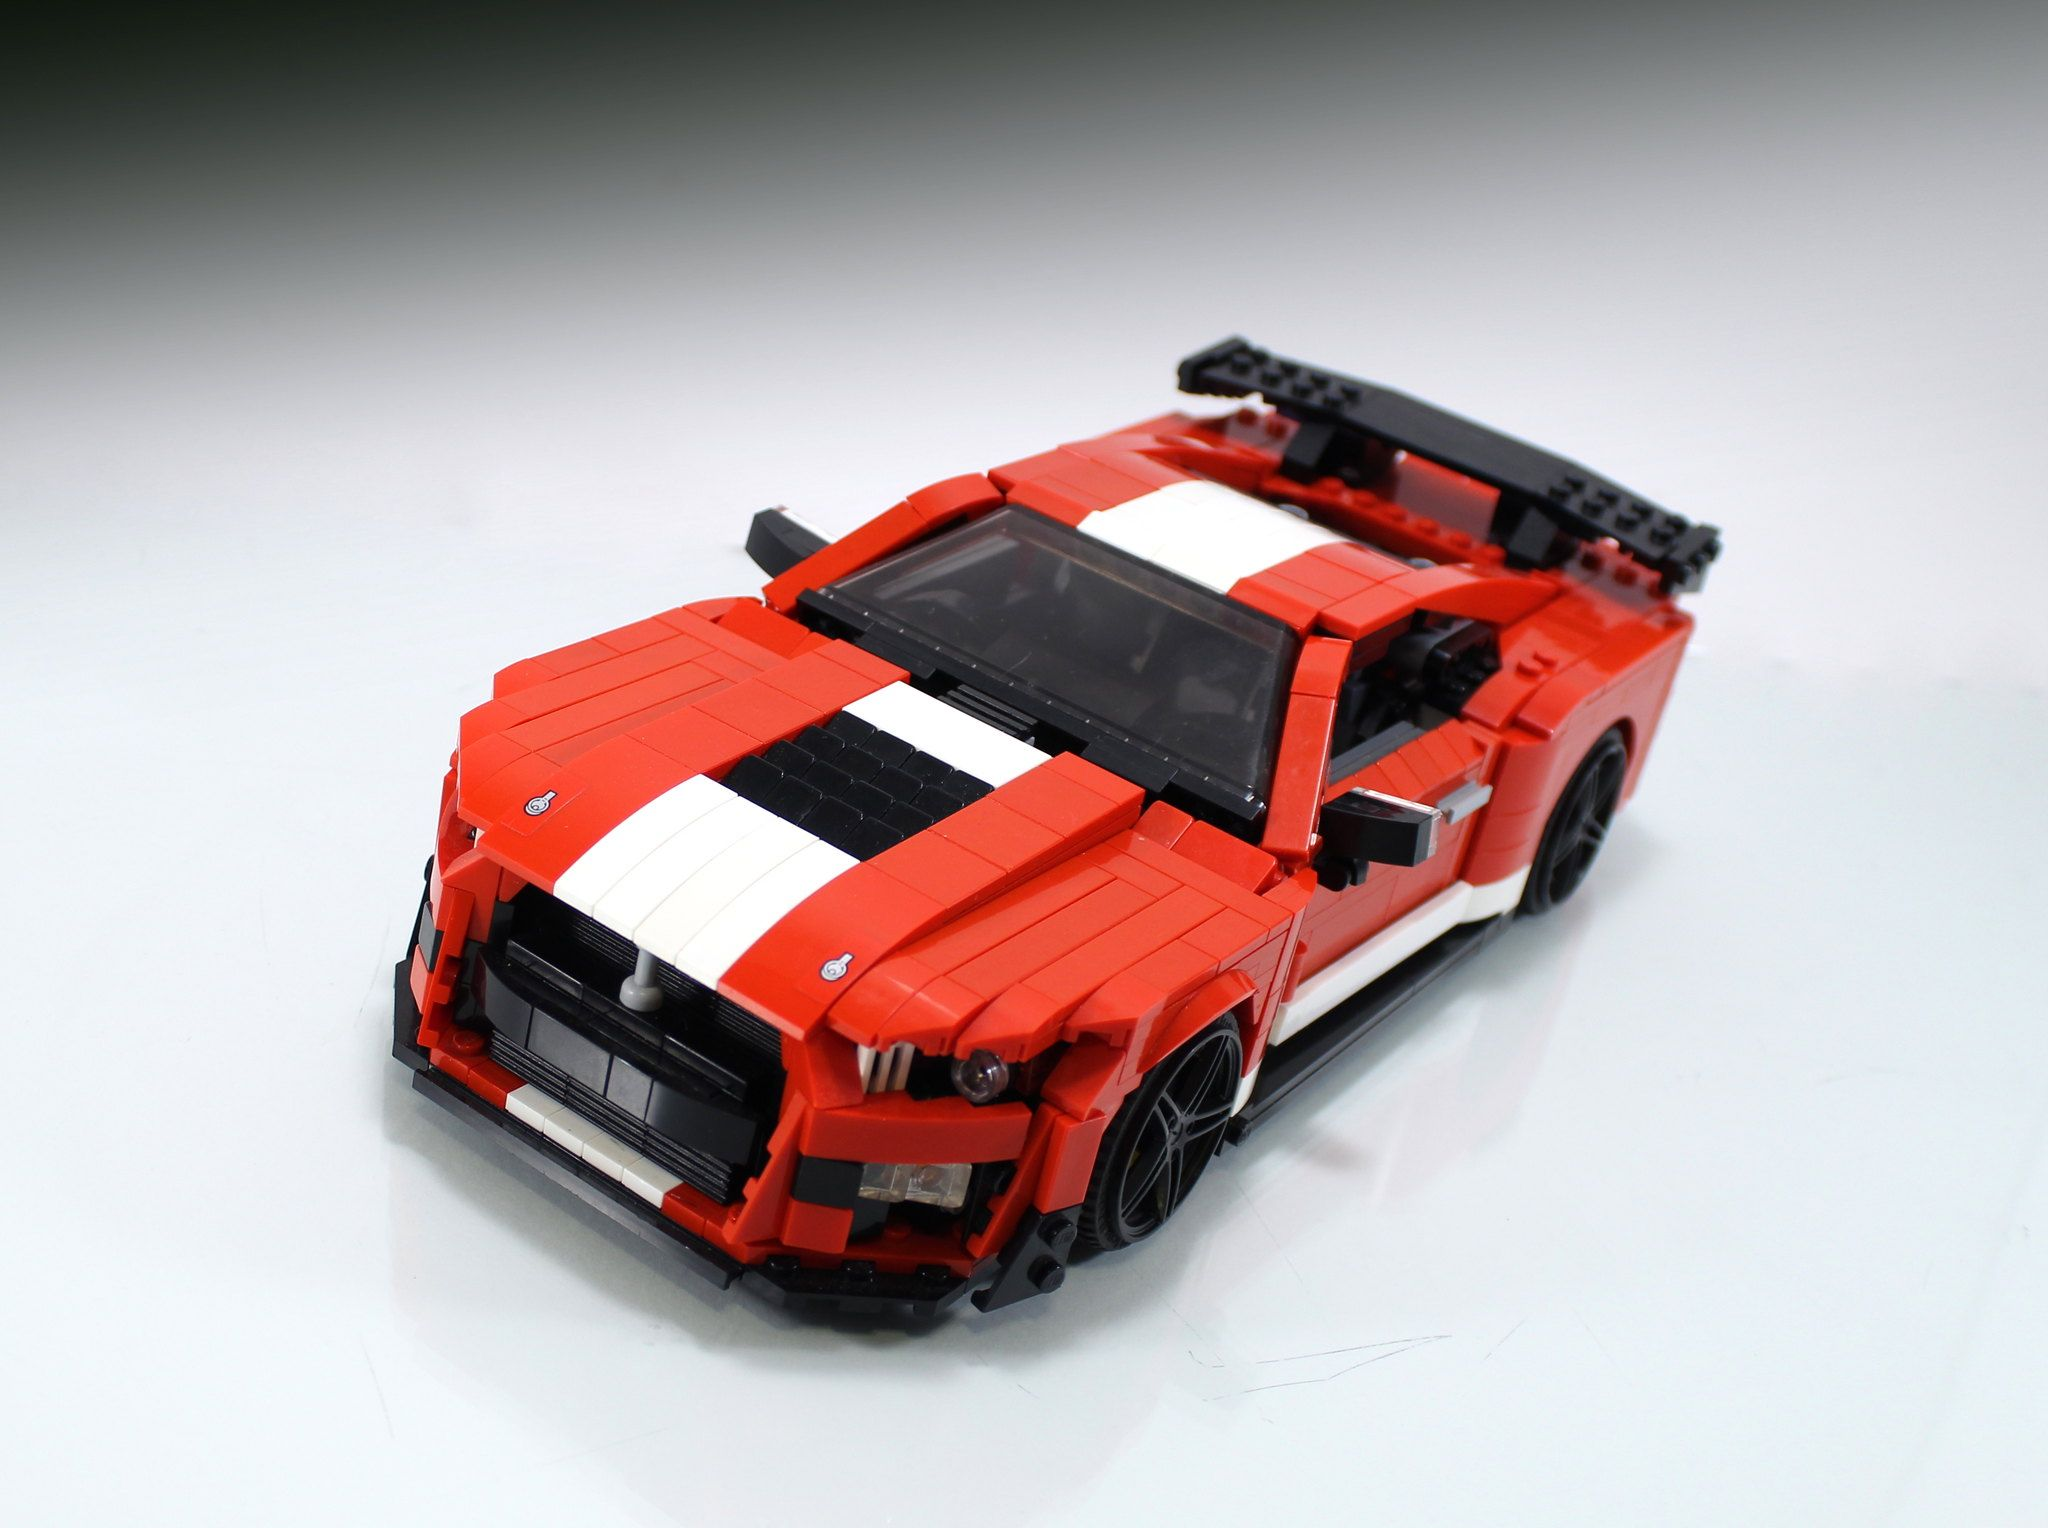 2020 Ford Mustang Shelby Gt500 Lego Truck Lego Wheels Ford